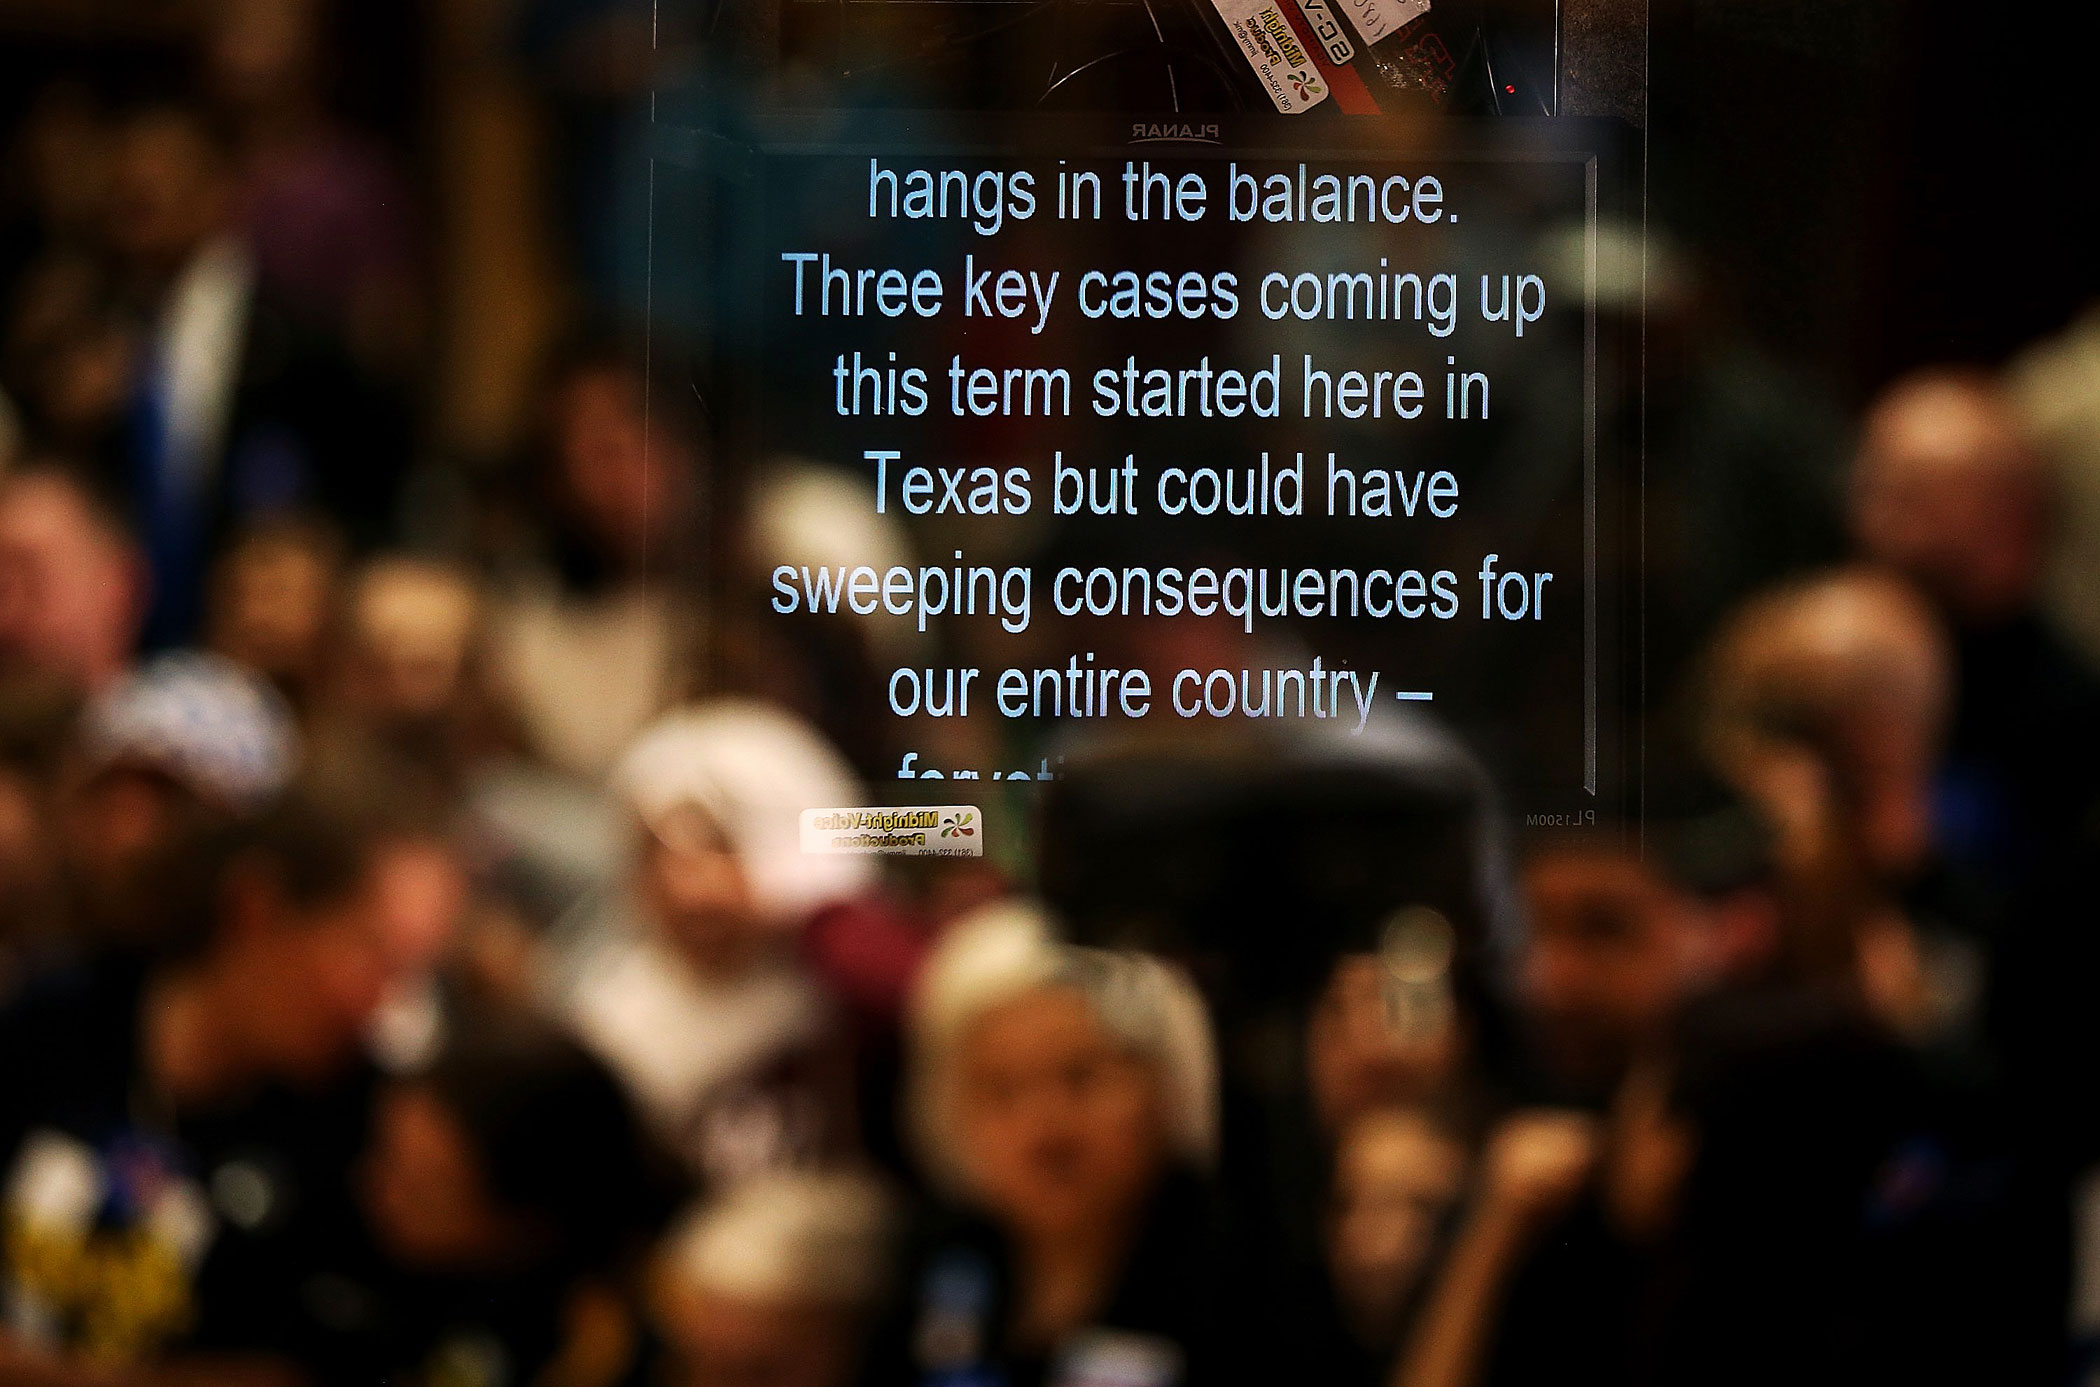 Notes appear on a teleprompter after Democratic presidential candidate and former Secretary of State Hillary Clinton spoke at a campaign rally at Texas Southern university on Feb. 20, 2016 in Houston.